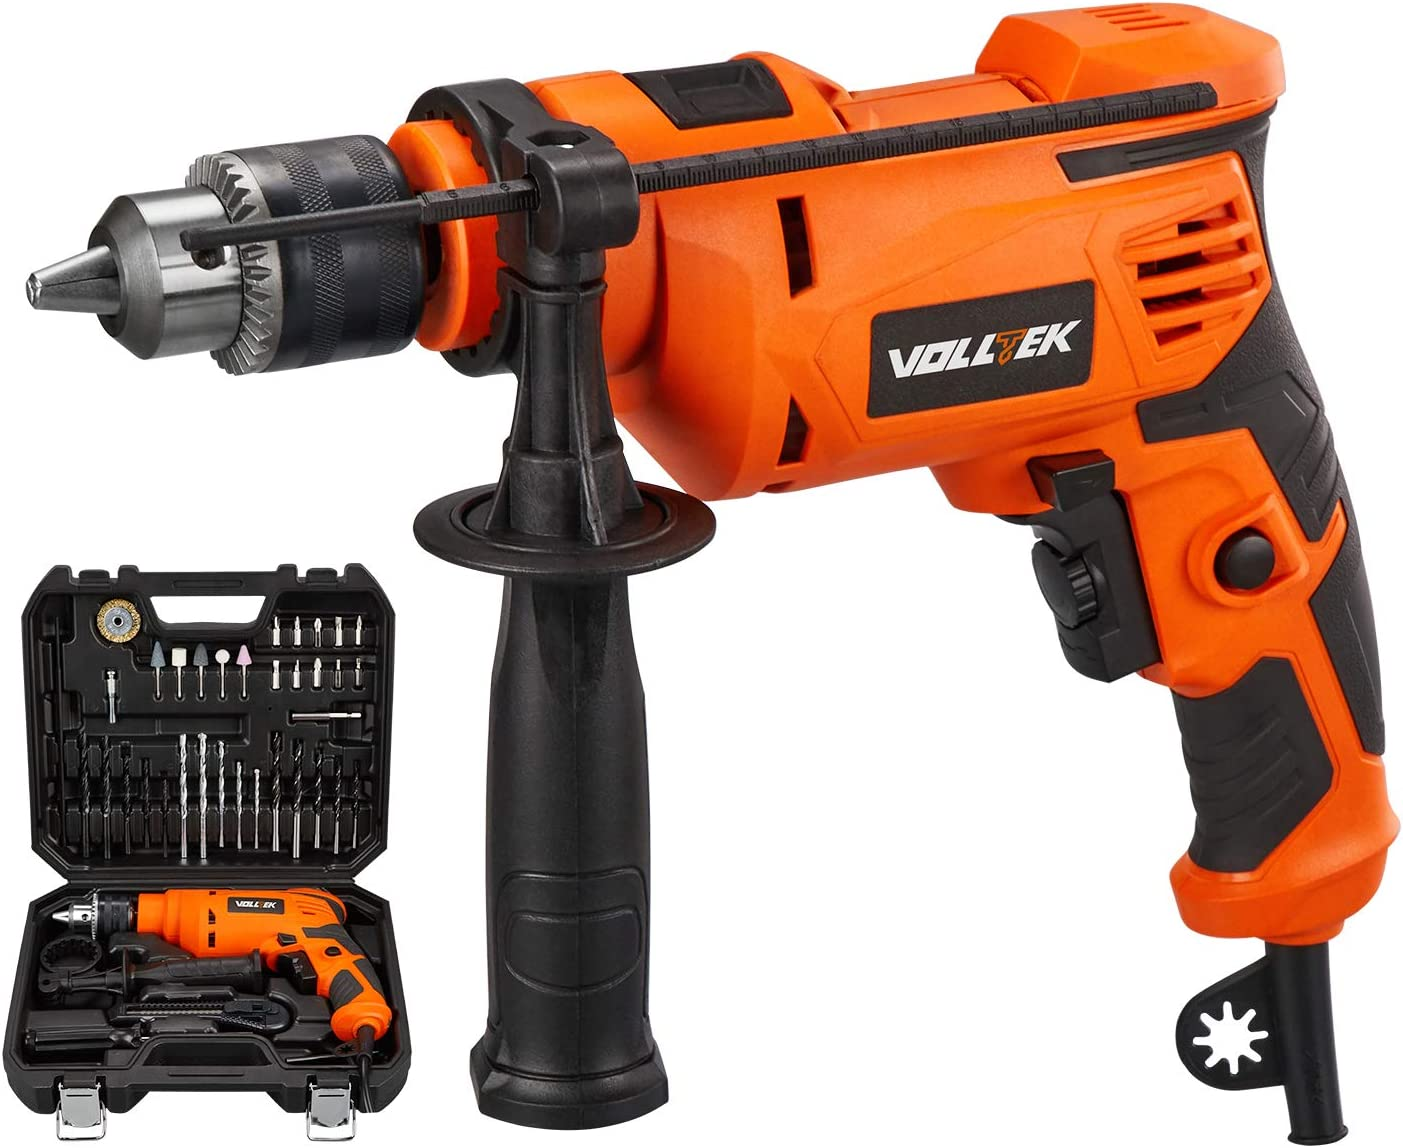 VOLLTEK 710W Hammer Drill kit with 38pcs Bit 6.5Amp 0-3200RPM Variable-speed Trigger Hammer and Drill Function 2 in 1, Suitable for DIY Woodworking VPID1041